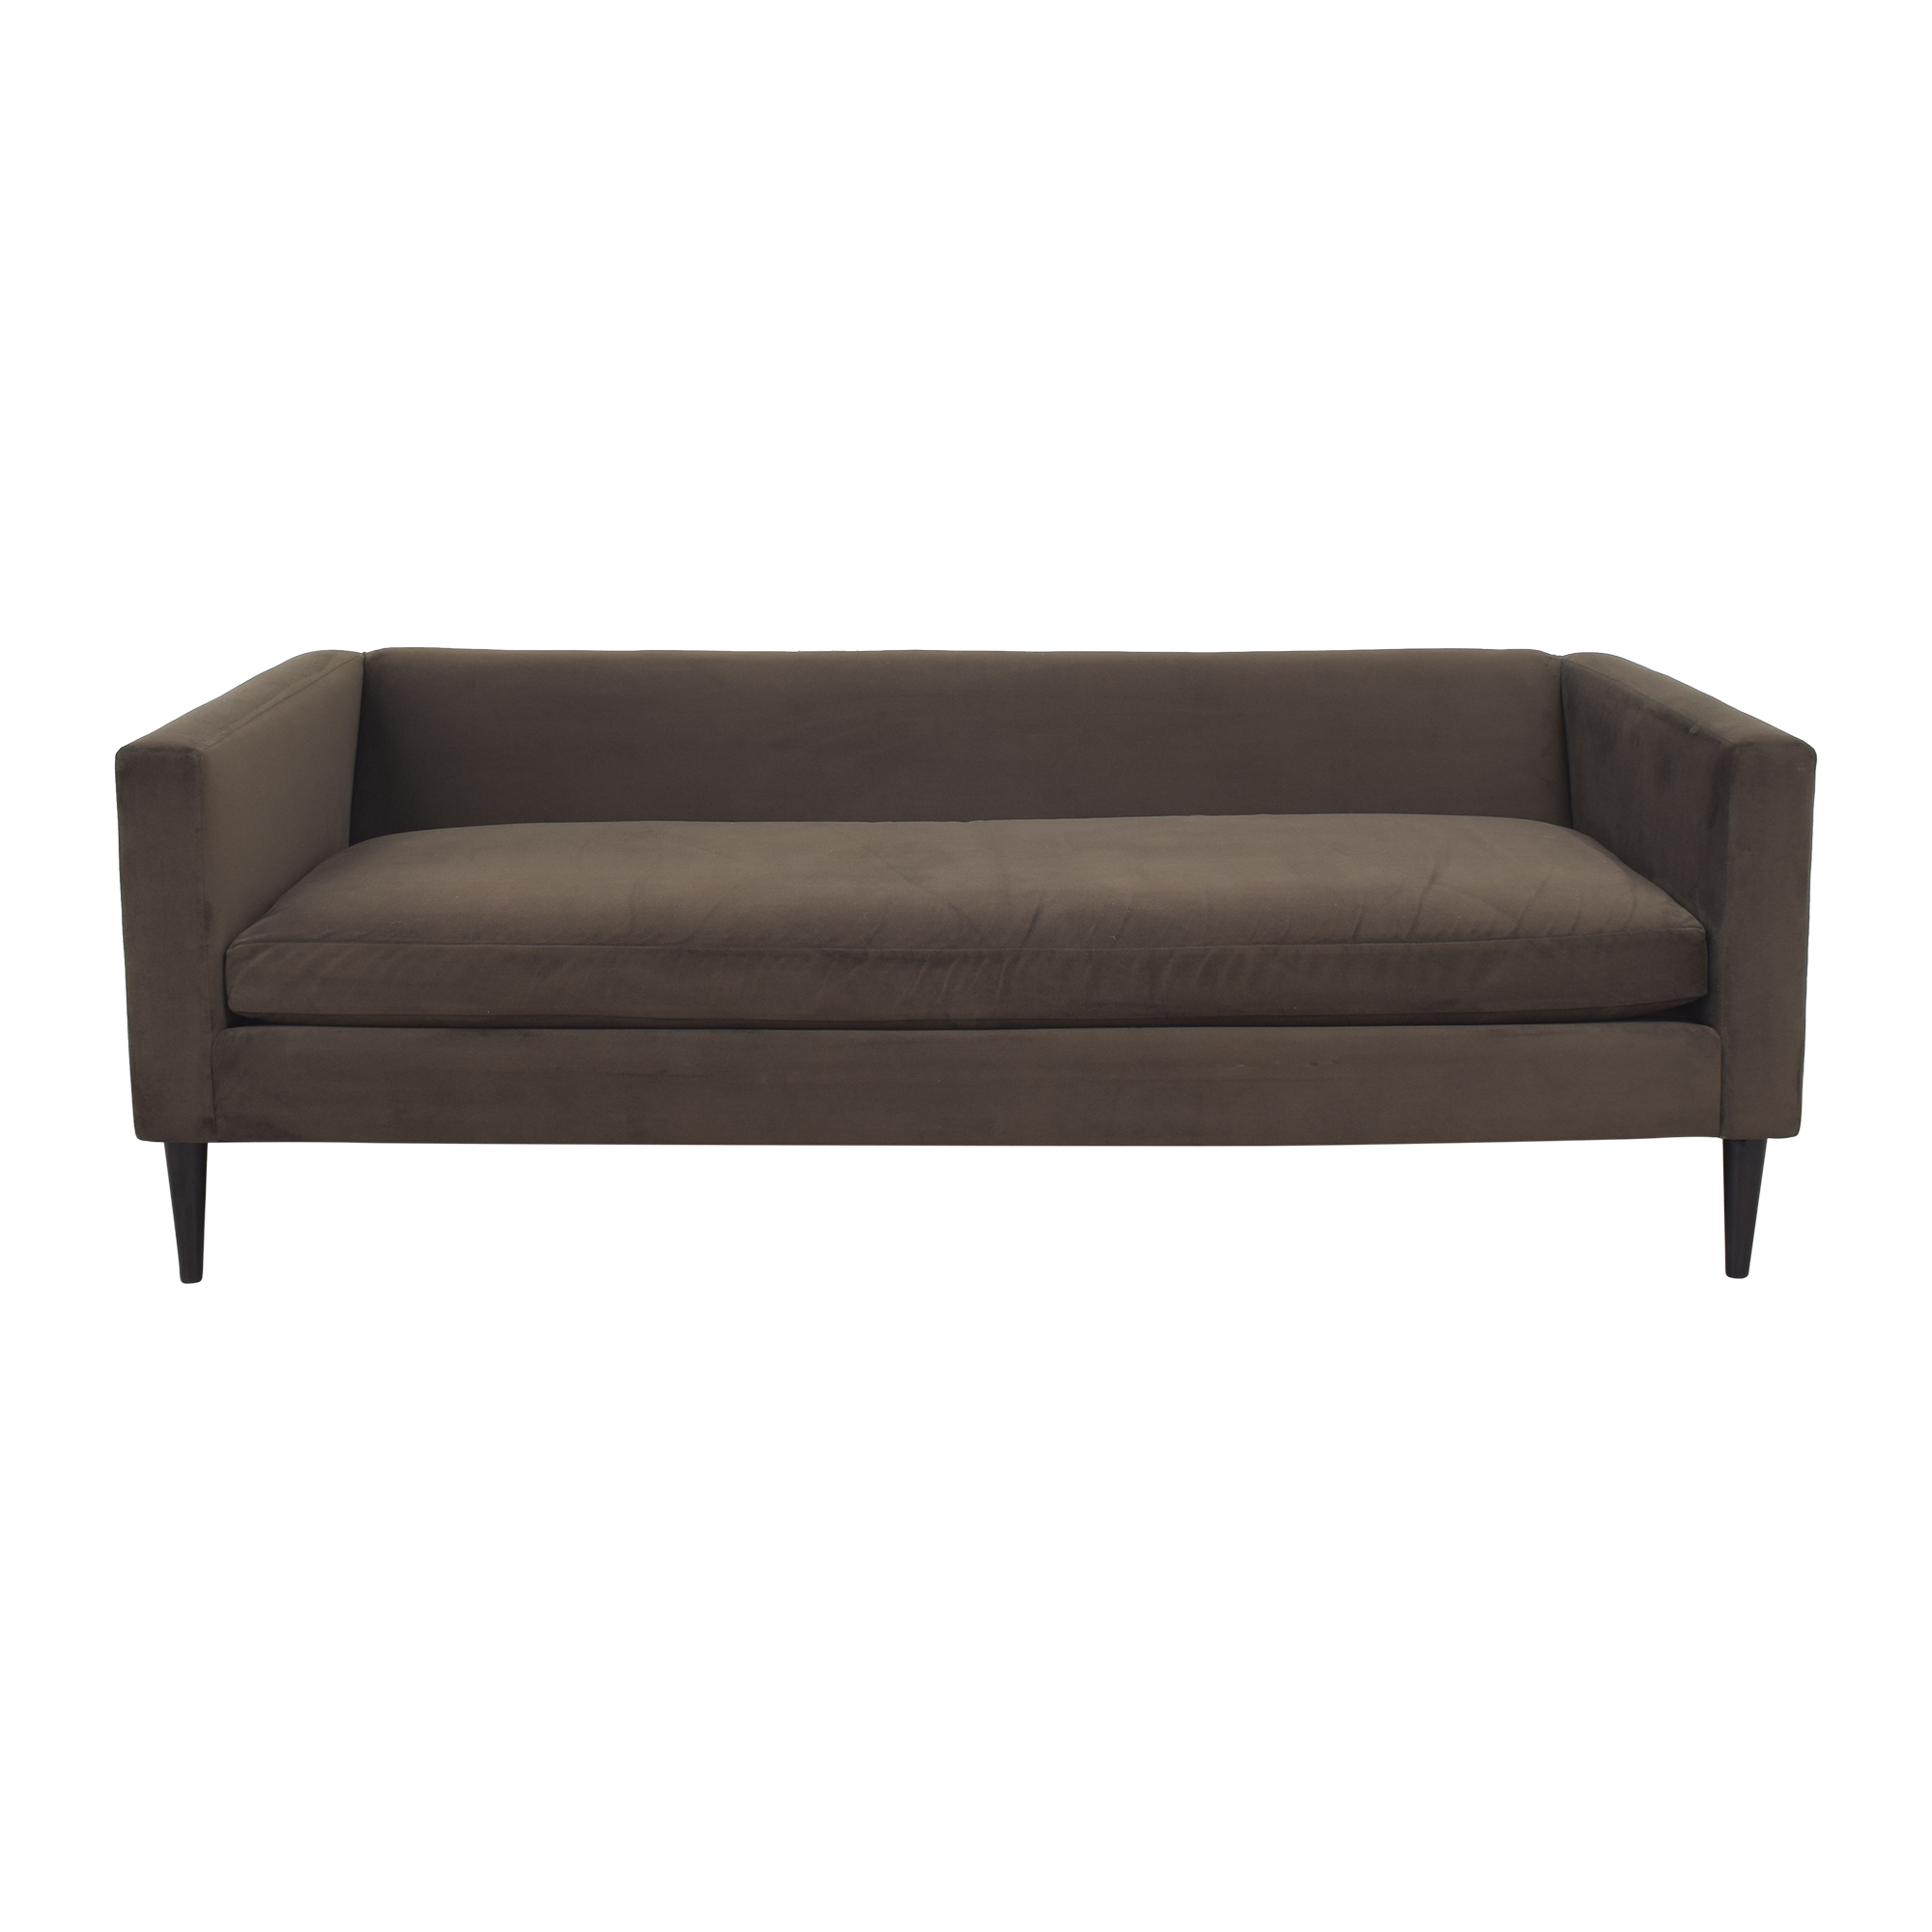 buy CB2 CB2 Bench Cushion Sofa with Pillows online